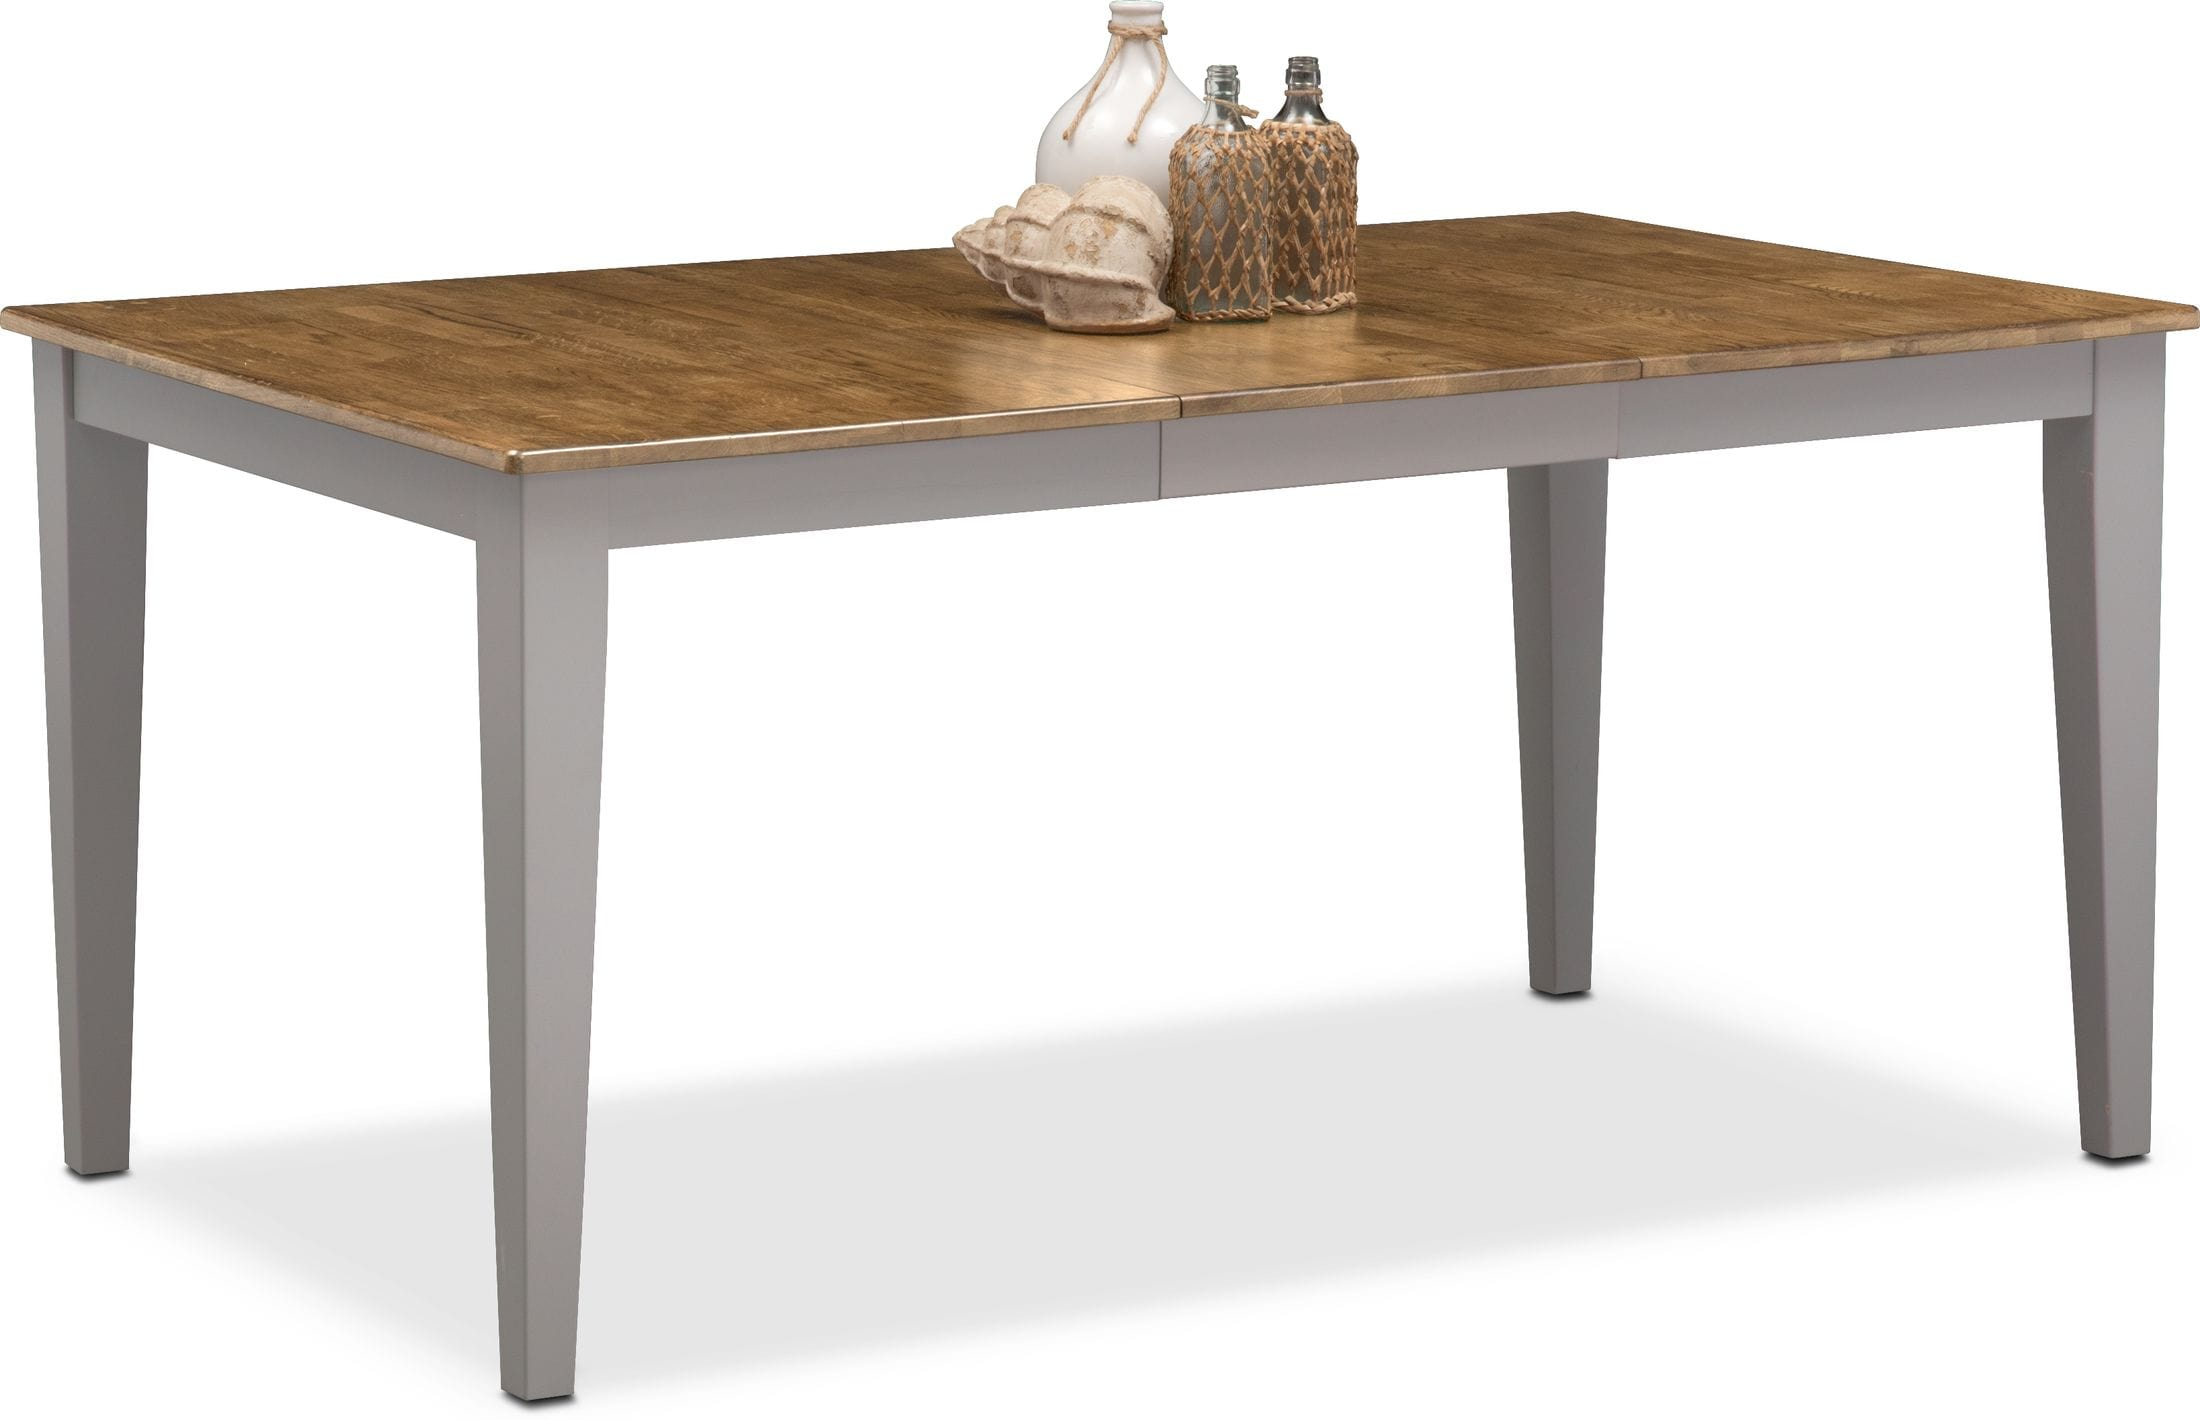 Dining Room Furniture - Nantucket Dining Table